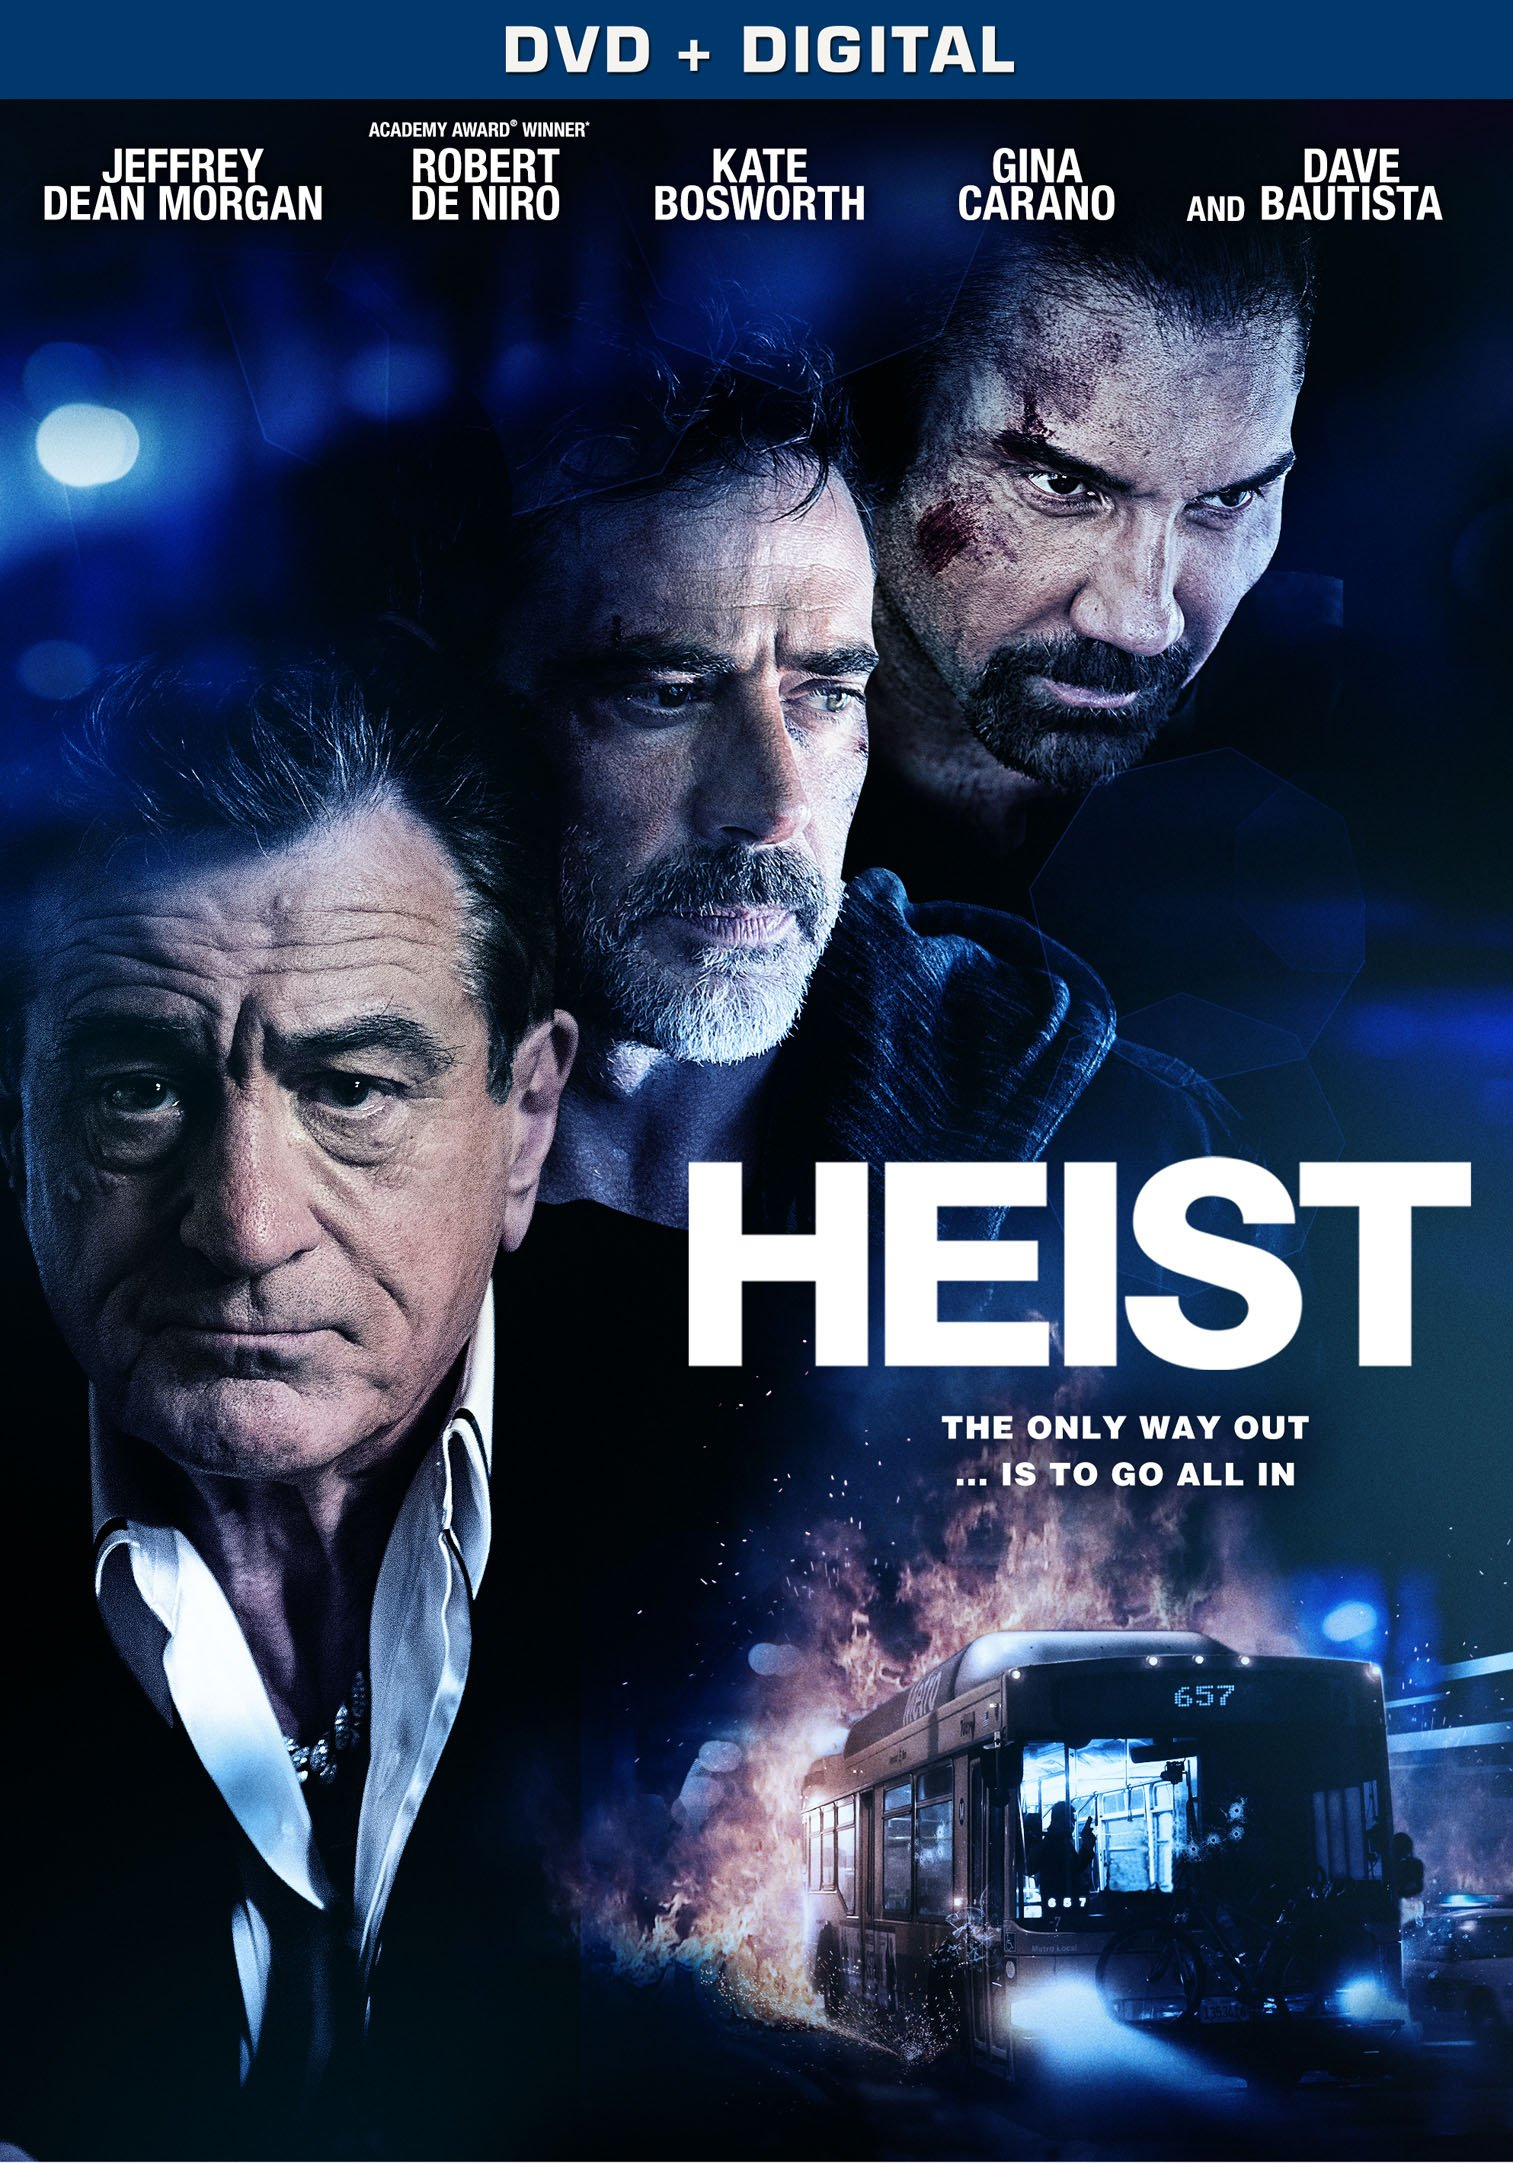 Heist wallpapers, Movie, HQ Heist pictures | 4K Wallpapers 2019